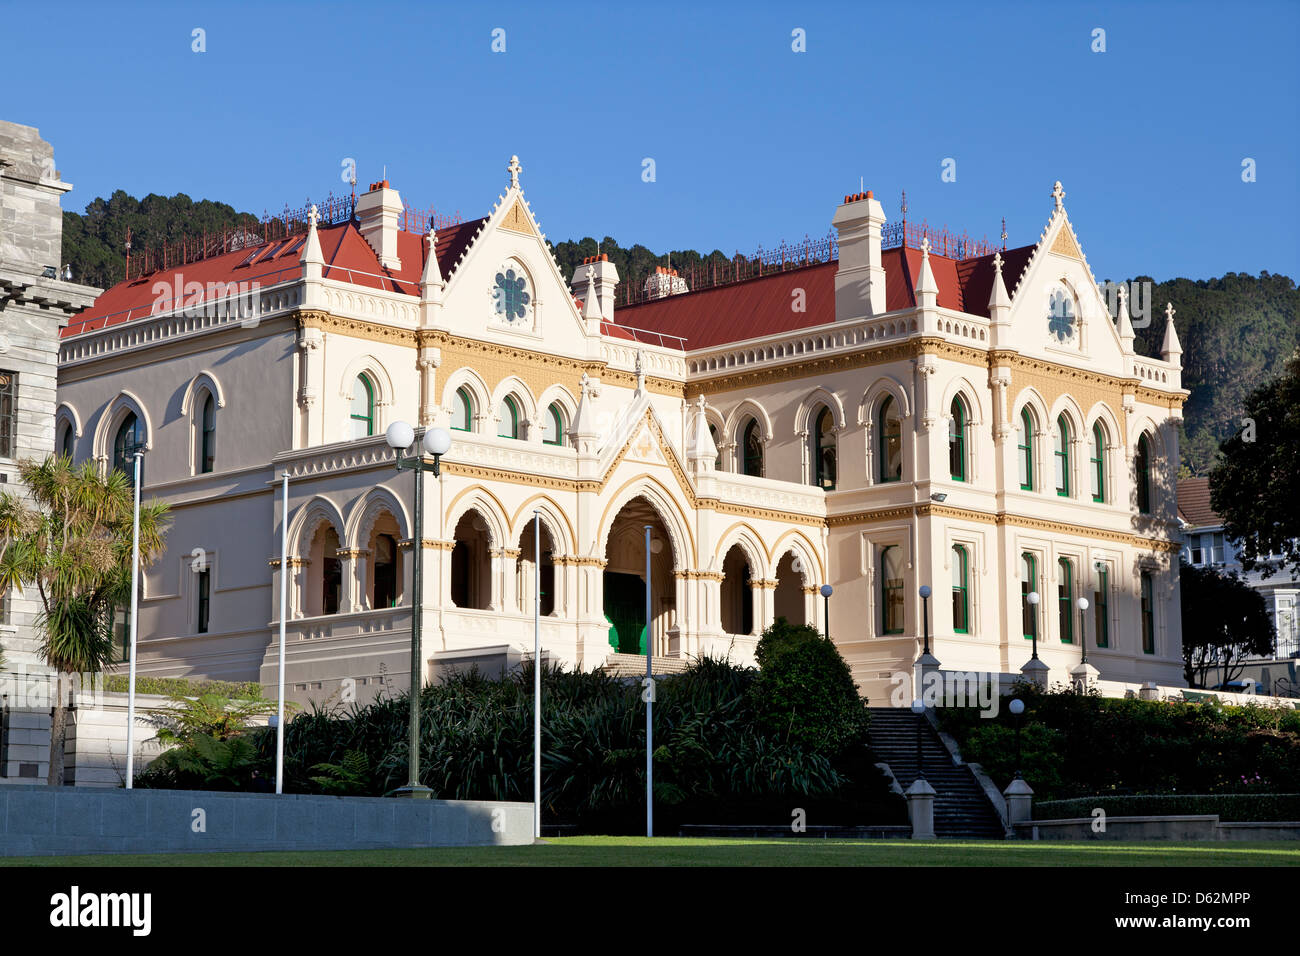 Old government buildings in Wellington, New Zealand - Stock Image